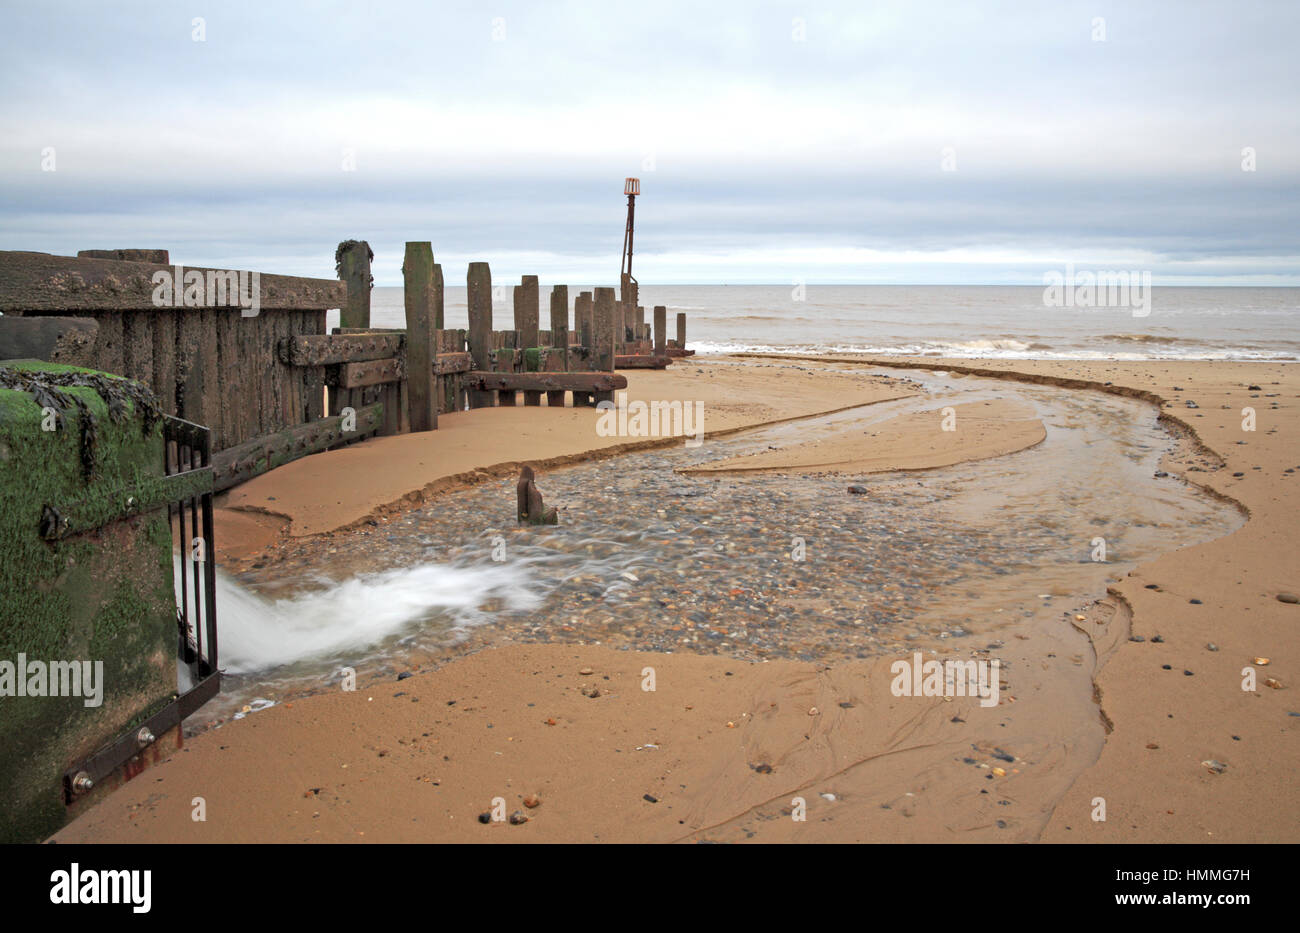 The outfall of the River Mun on the beach at Mundesley-on-Sea, Norfolk, England, United Kingdom. - Stock Image